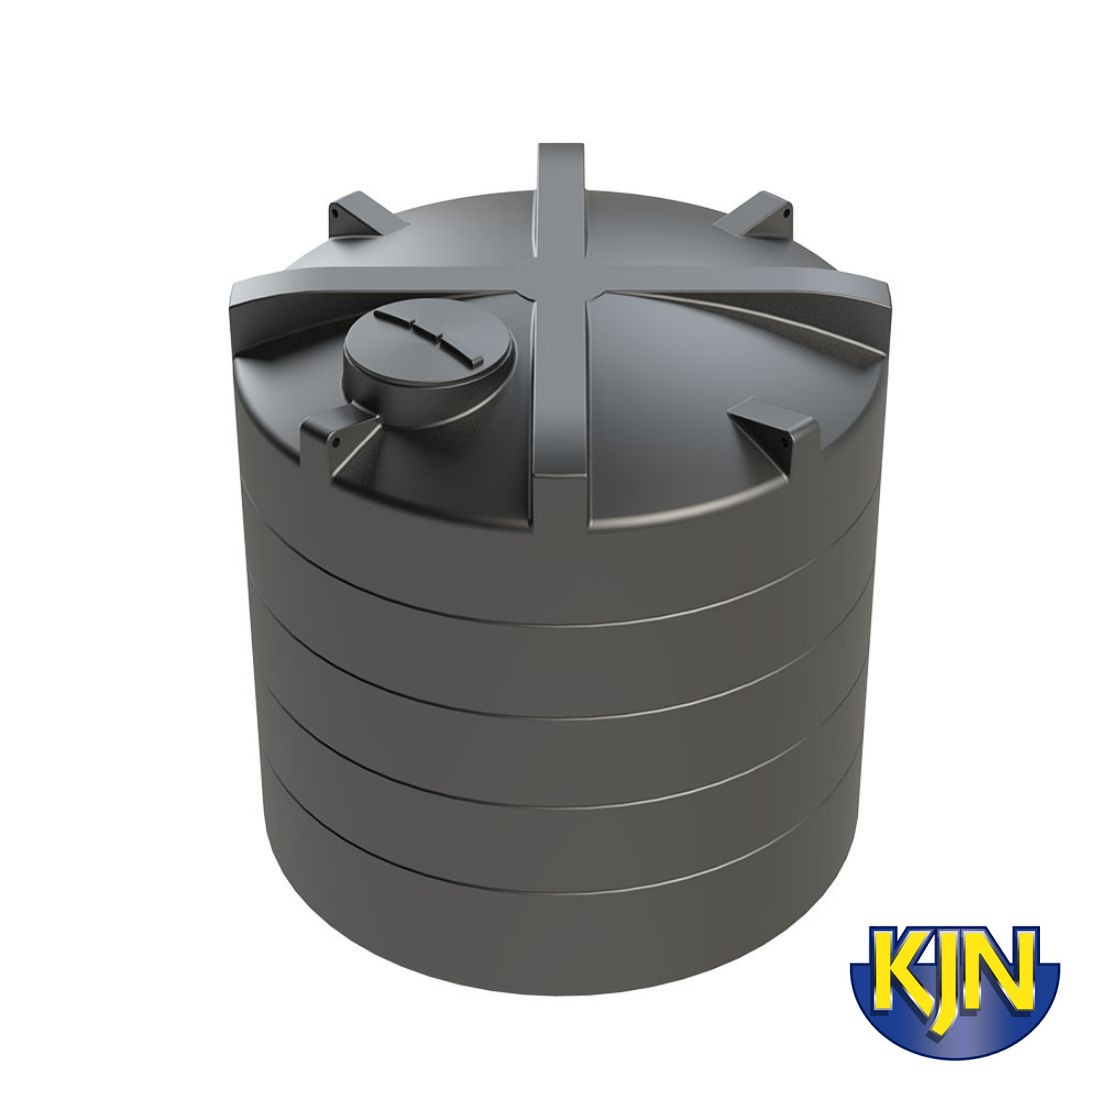 Enduramaxx 12,500 Litre Vertical Potable WRAS Water Storage Tank